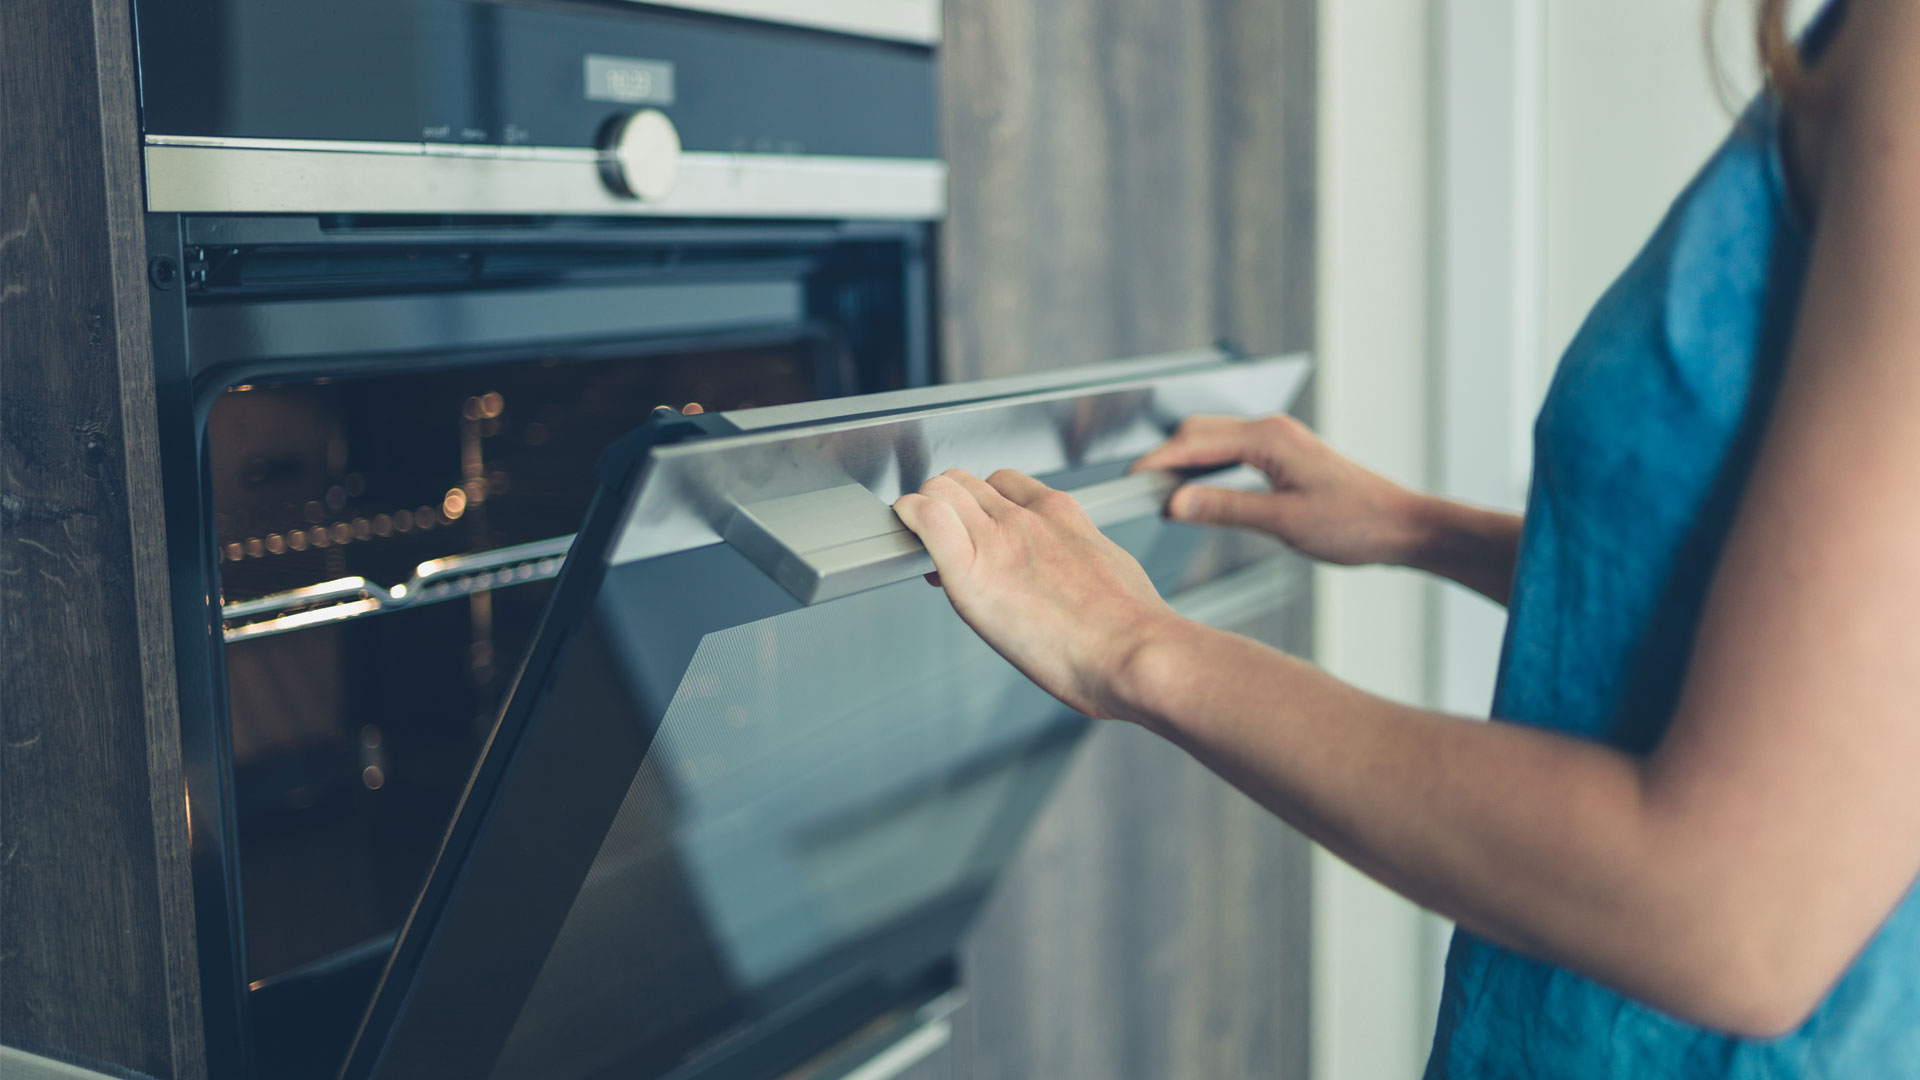 Best Electric Wall Double Ovens 2021 | Top Ten Reviews